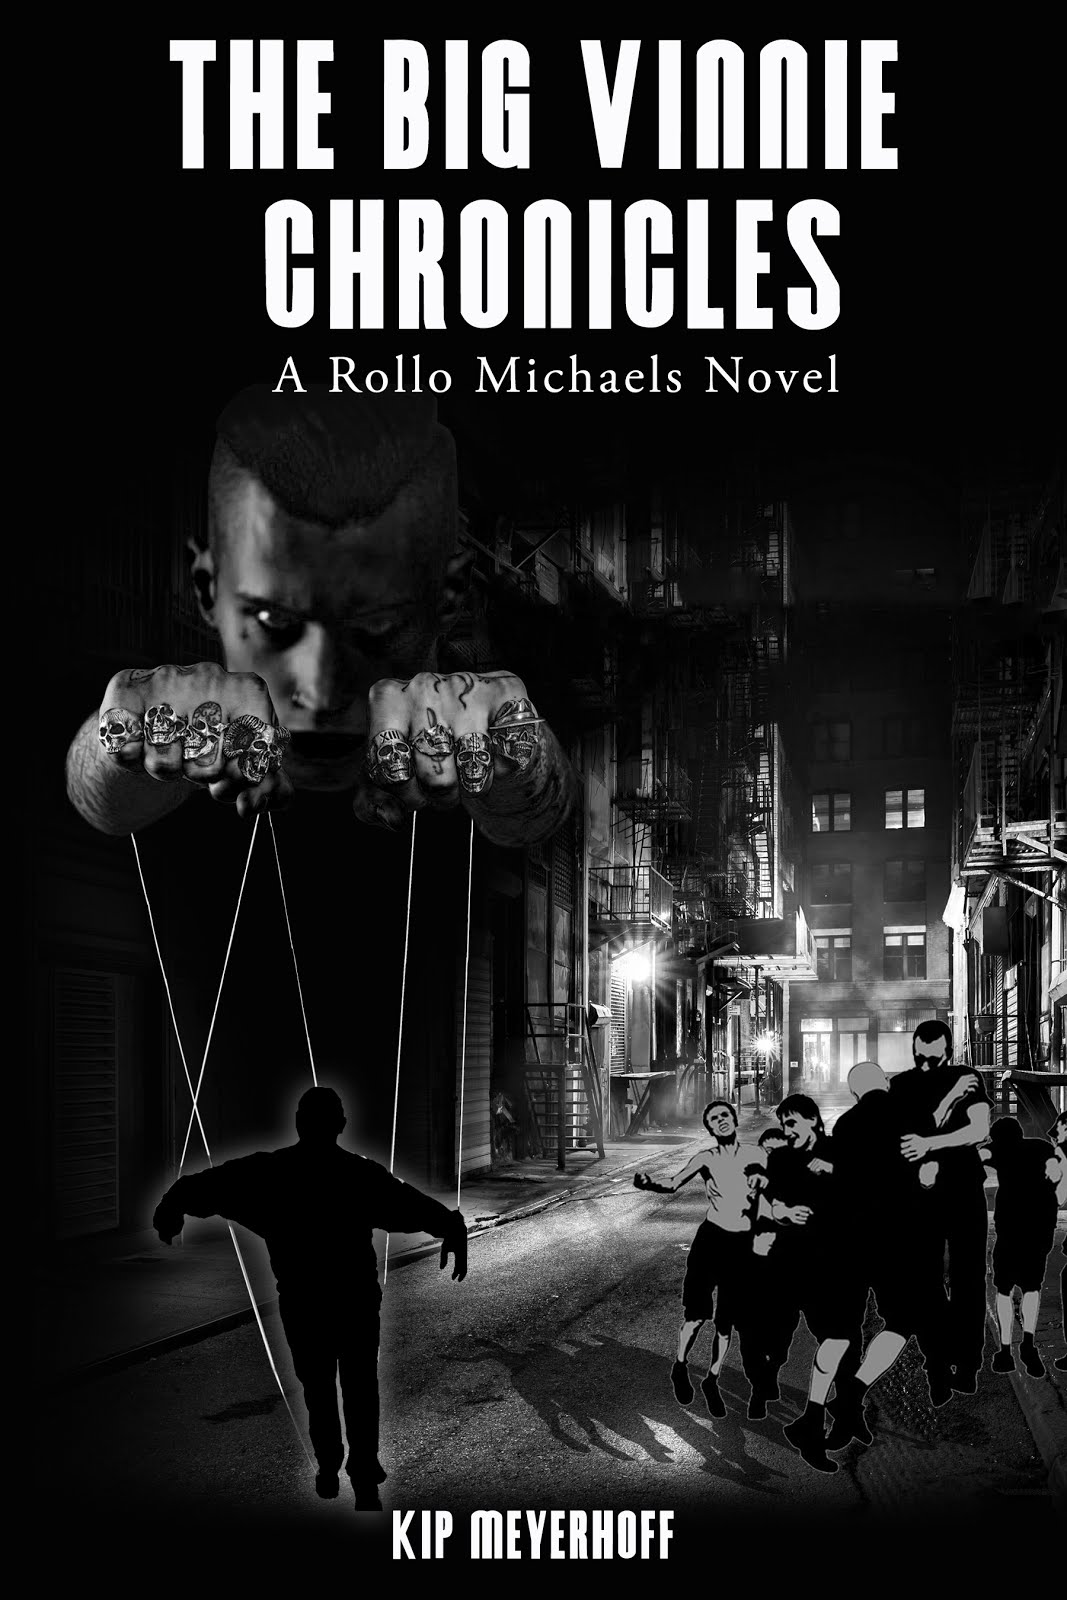 The Big Vinnie Chronicles: A Rollo Michaels Novel